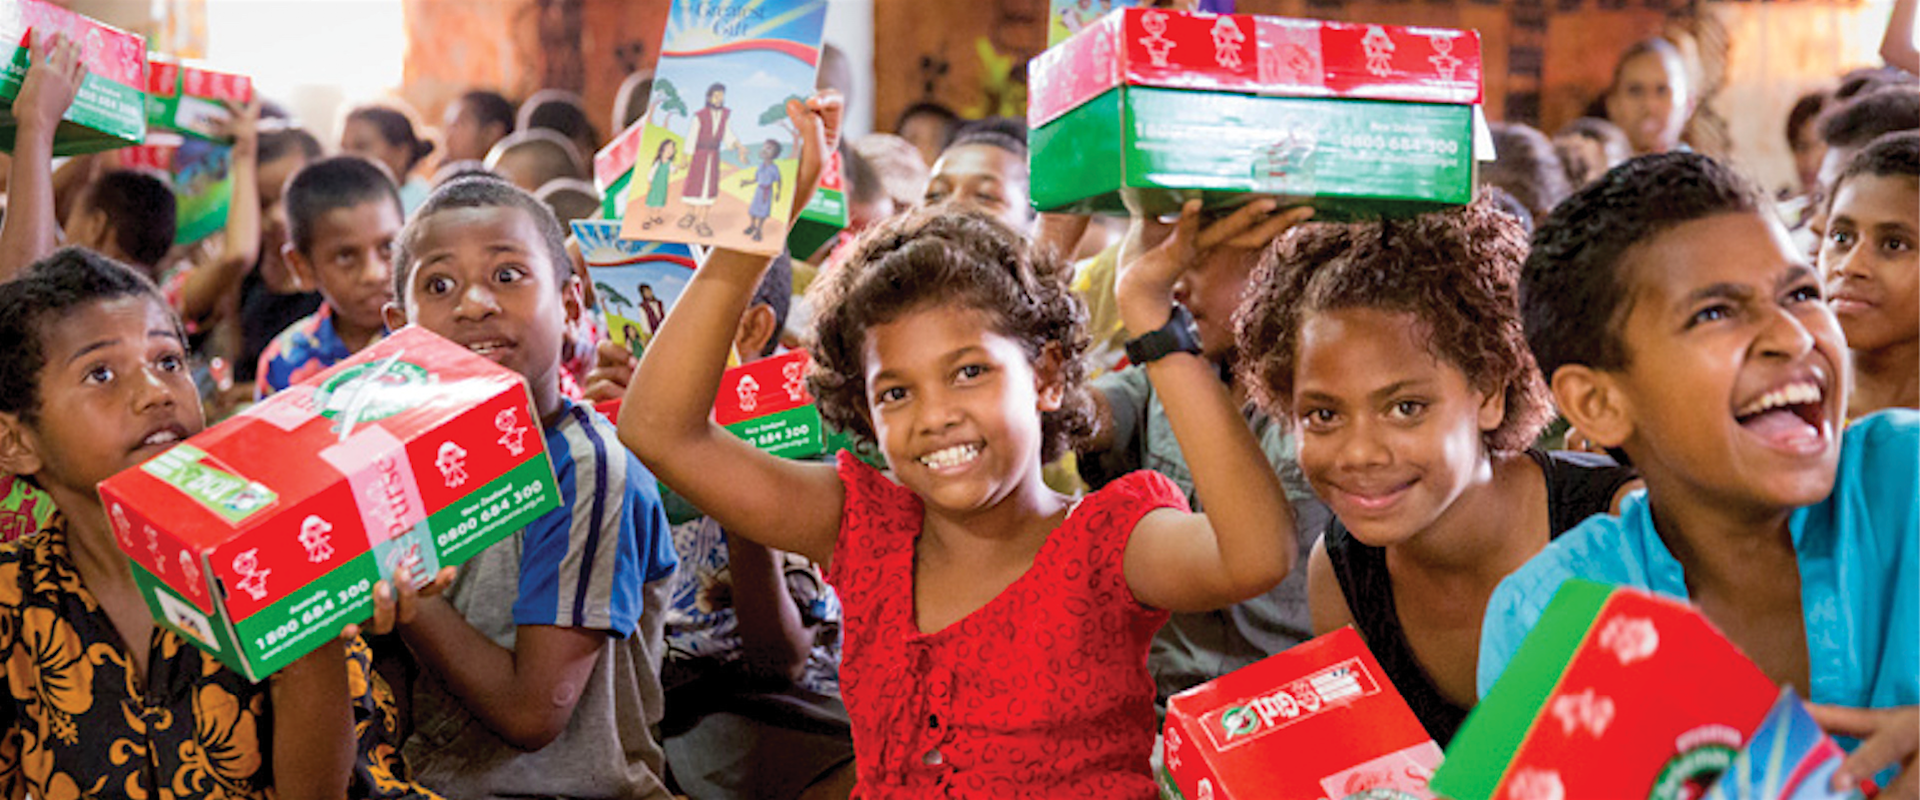 operation christmas child packing party november 10 oak brook - Operation Christmas Child Images